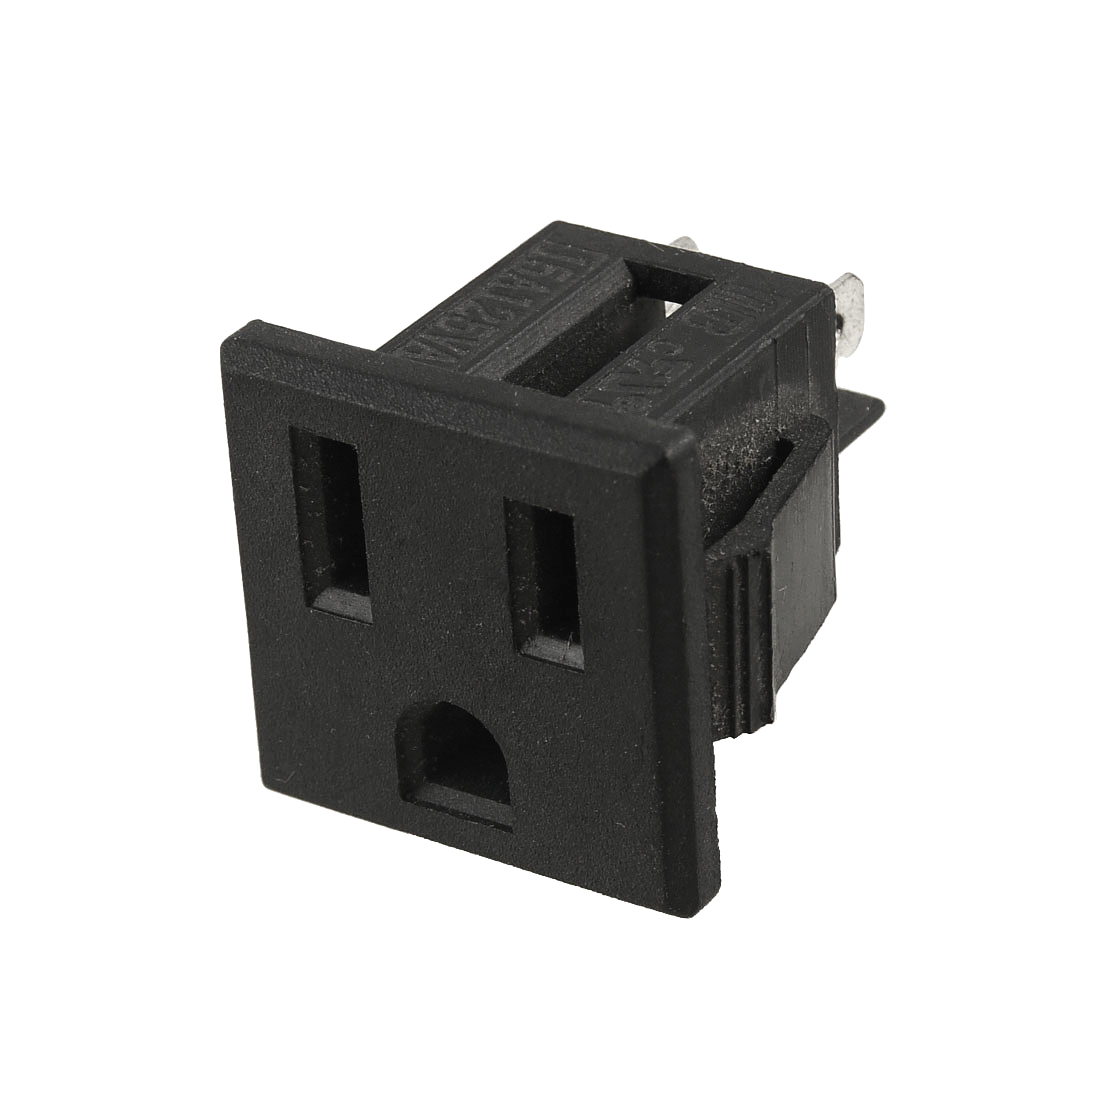 US Plug AC 125V 15A Panel Mount US Outlet Power Socket Black